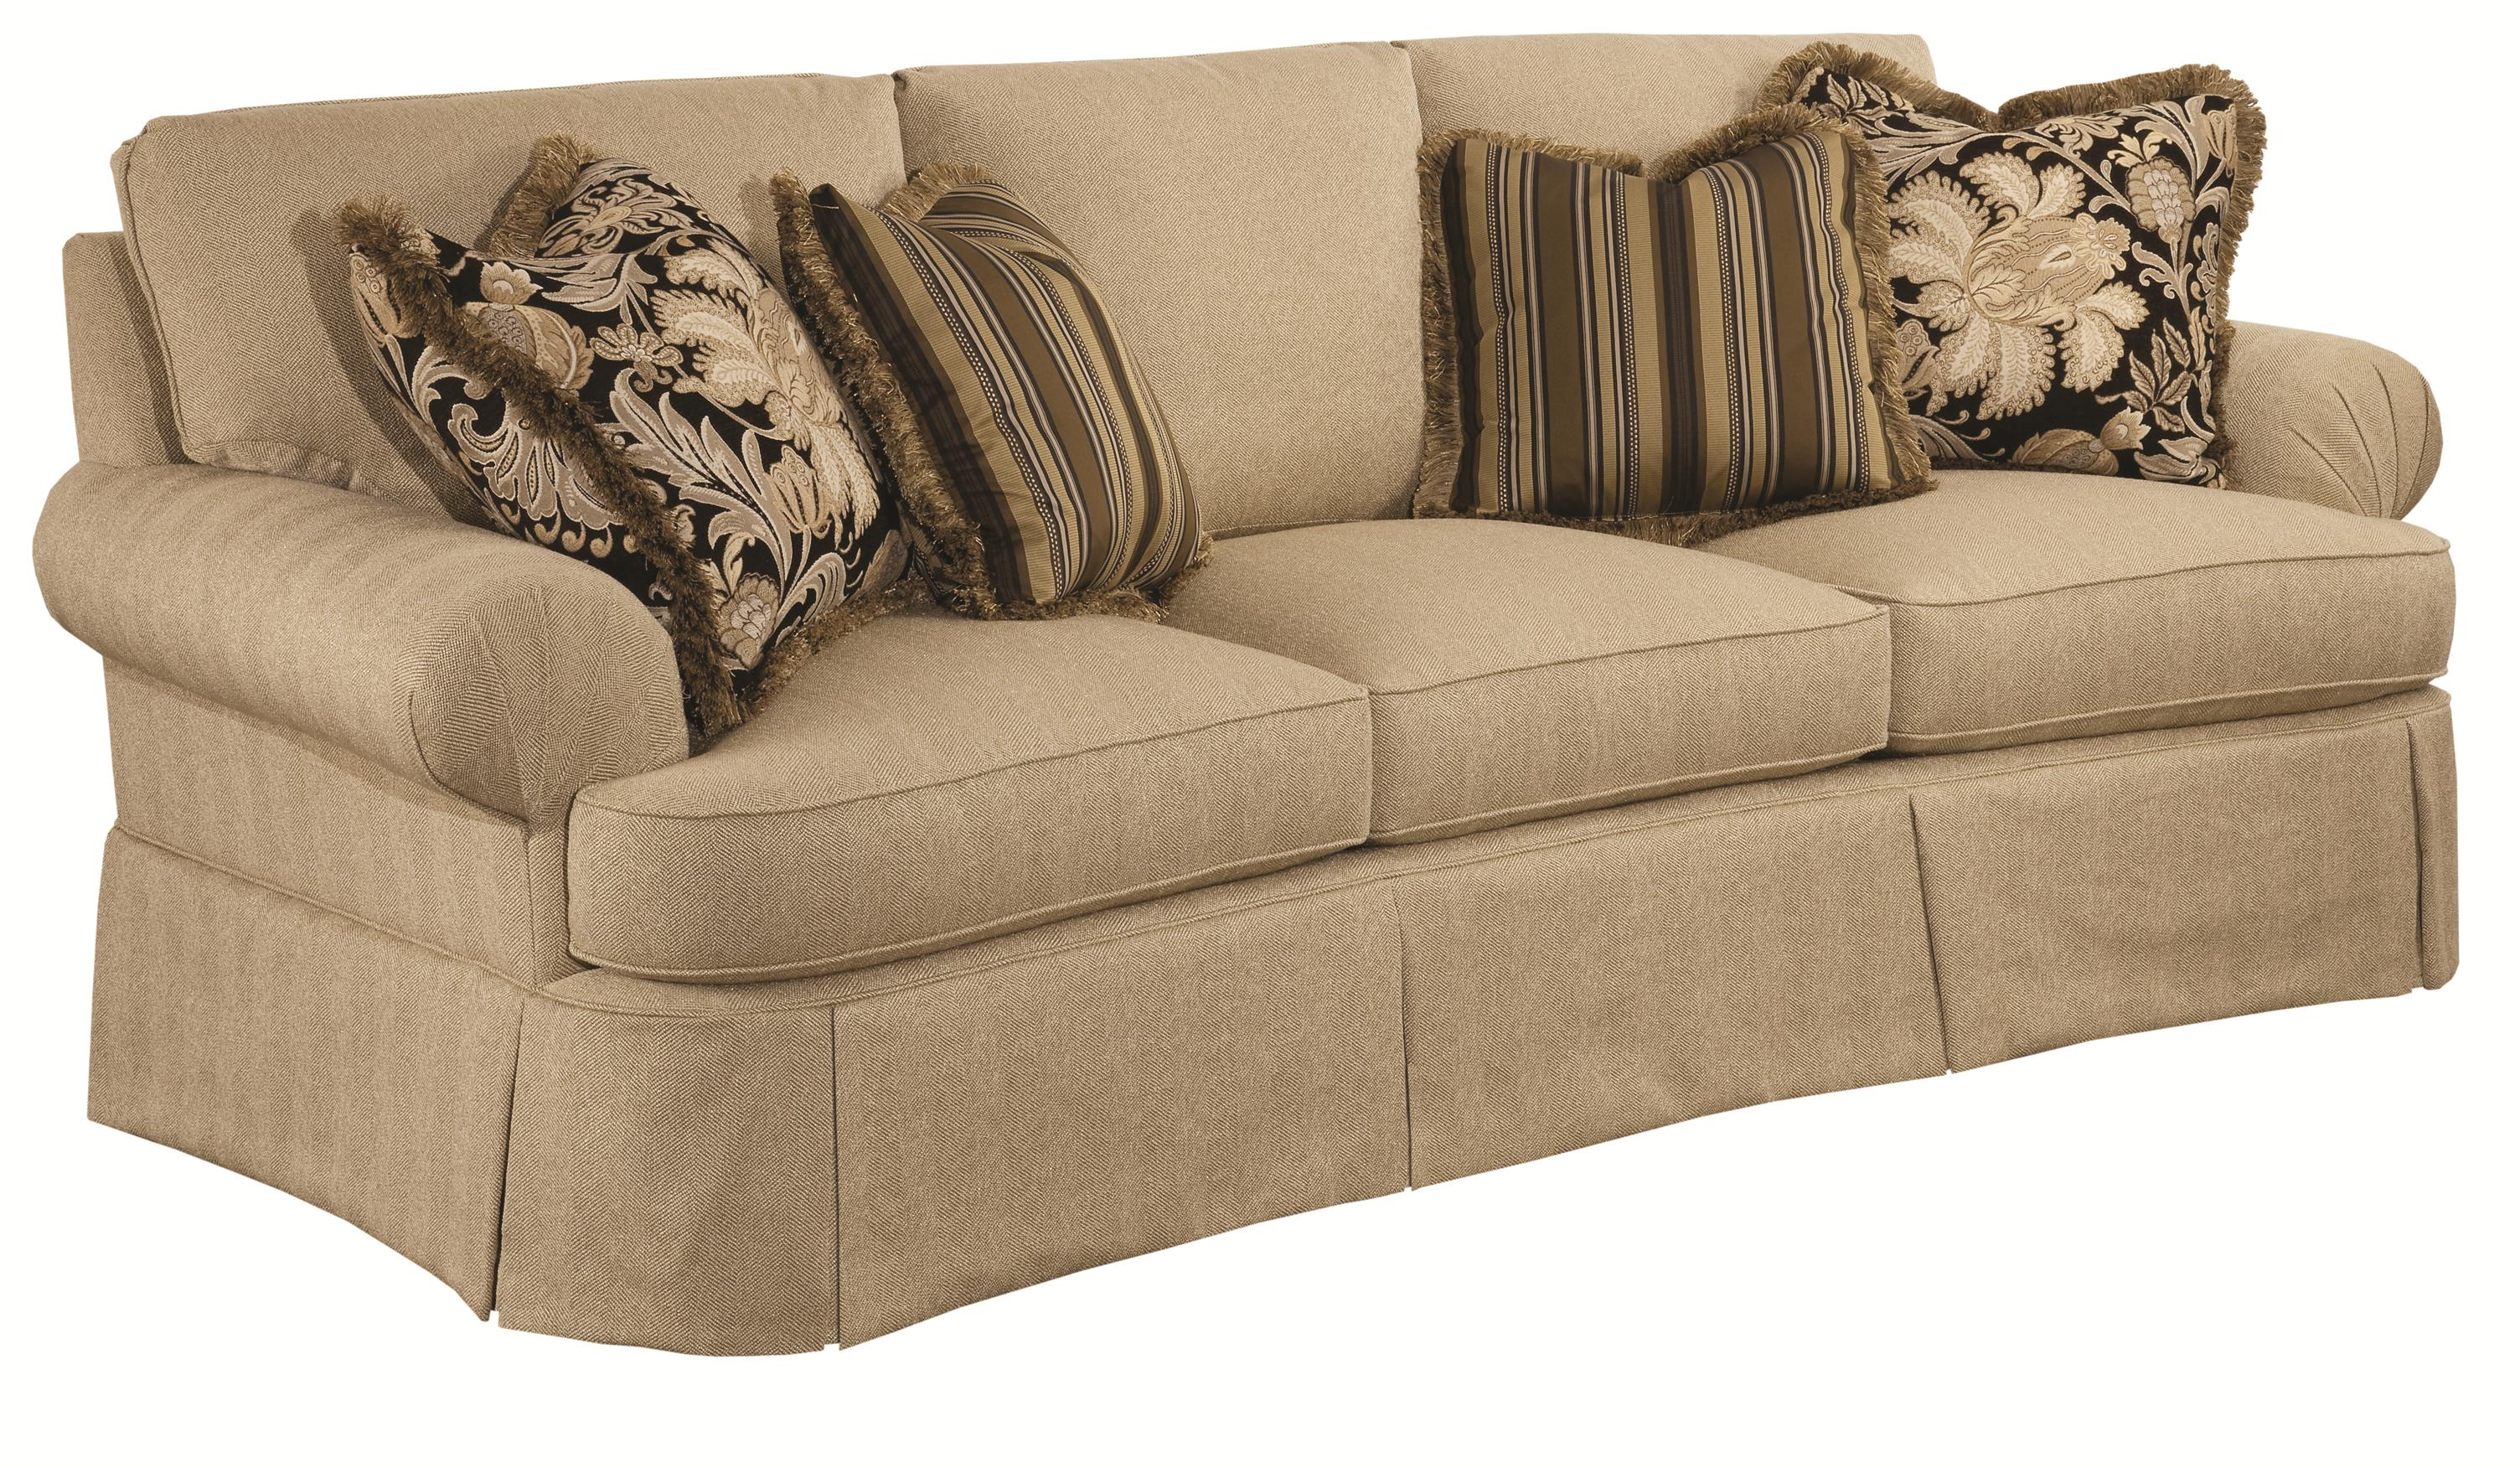 Kincaid Furniture Danbury Traditional